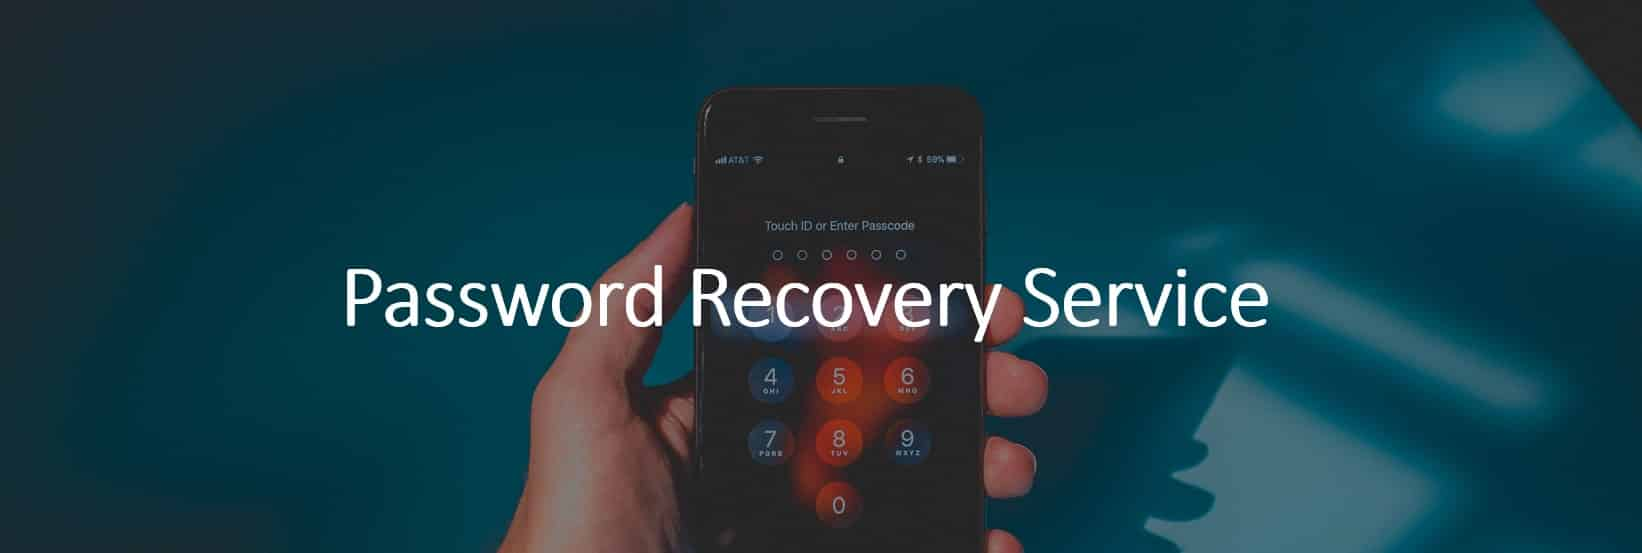 Password Recovery Service